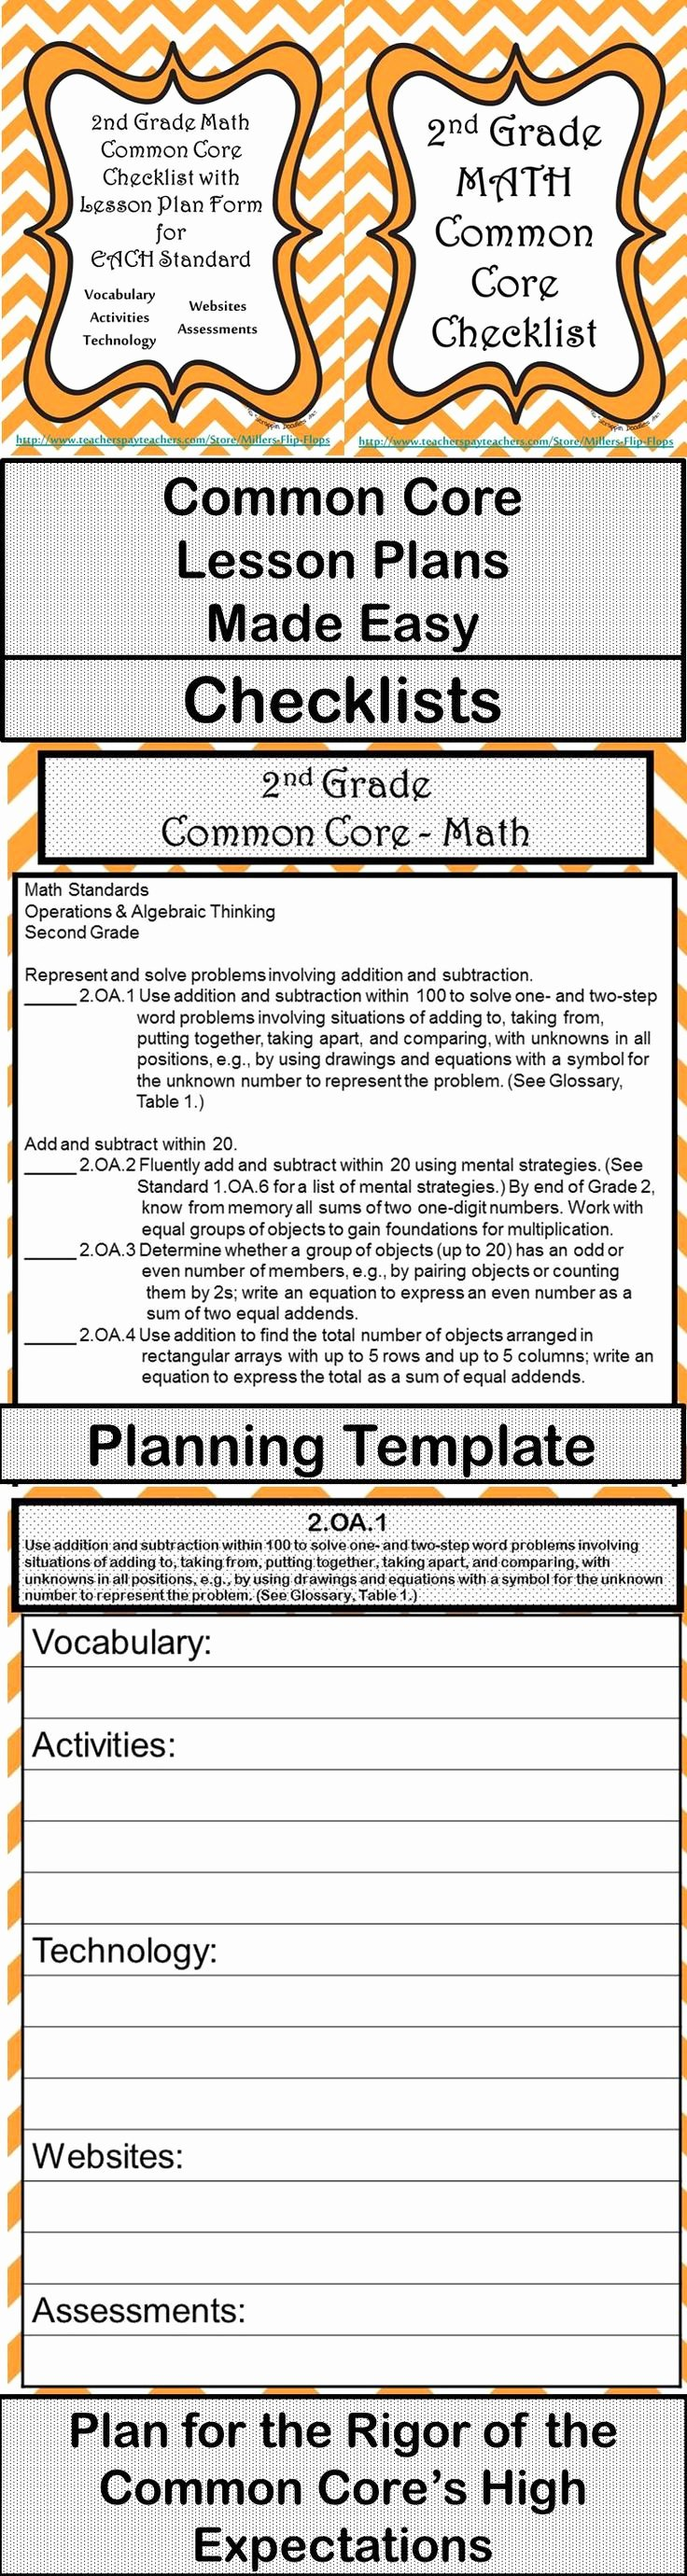 2nd Grade Lesson Plan Template Best Of 2nd Grade Math Mon Core Checklist Lesson Planning